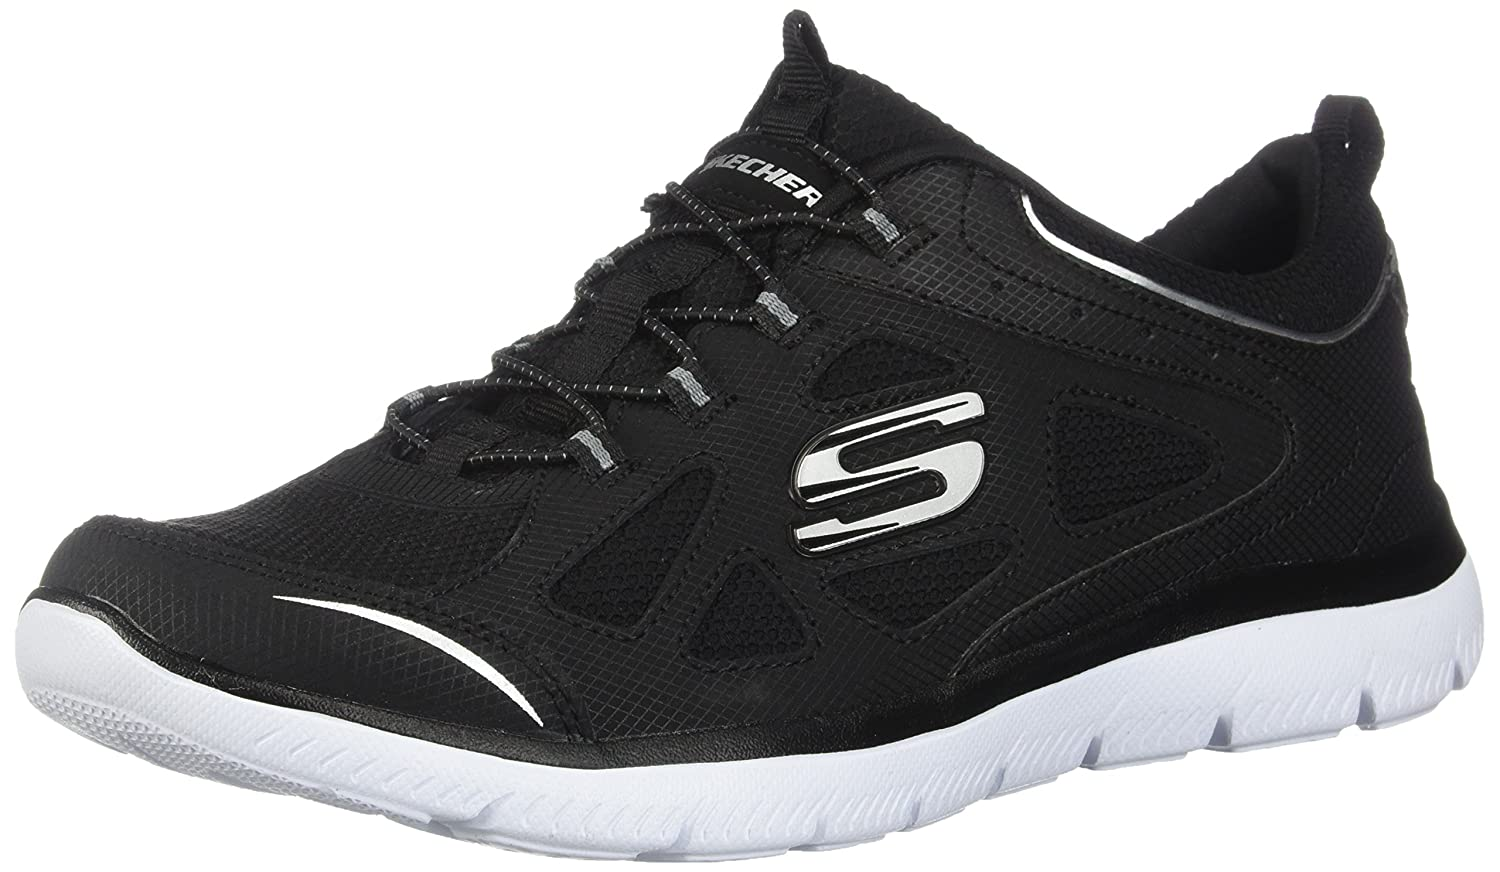 Skechers Women's SUMMITS - BUILT-IN Sneakers 12981